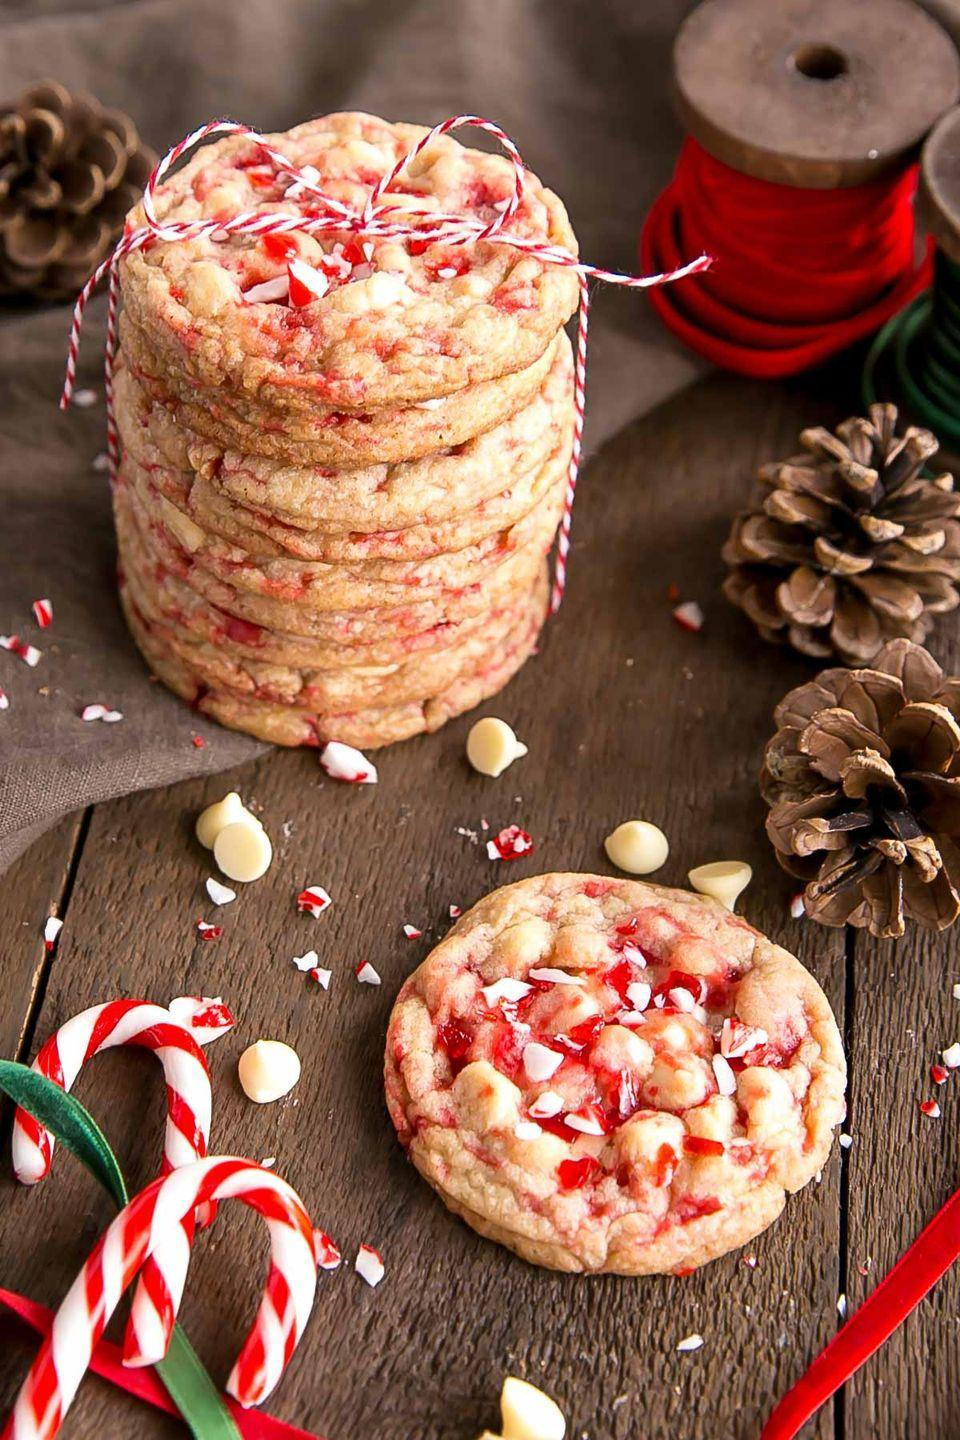 "<p>White chocolate adds just the right amount of sweetness to this no-chill dough.</p><p><strong>Get the recipe at <a href=""https://livforcake.com/white-chocolate-candy-cane-cookies/"" rel=""nofollow noopener"" target=""_blank"" data-ylk=""slk:Liv for Cake"" class=""link rapid-noclick-resp"">Liv for Cake</a>.</strong></p>"